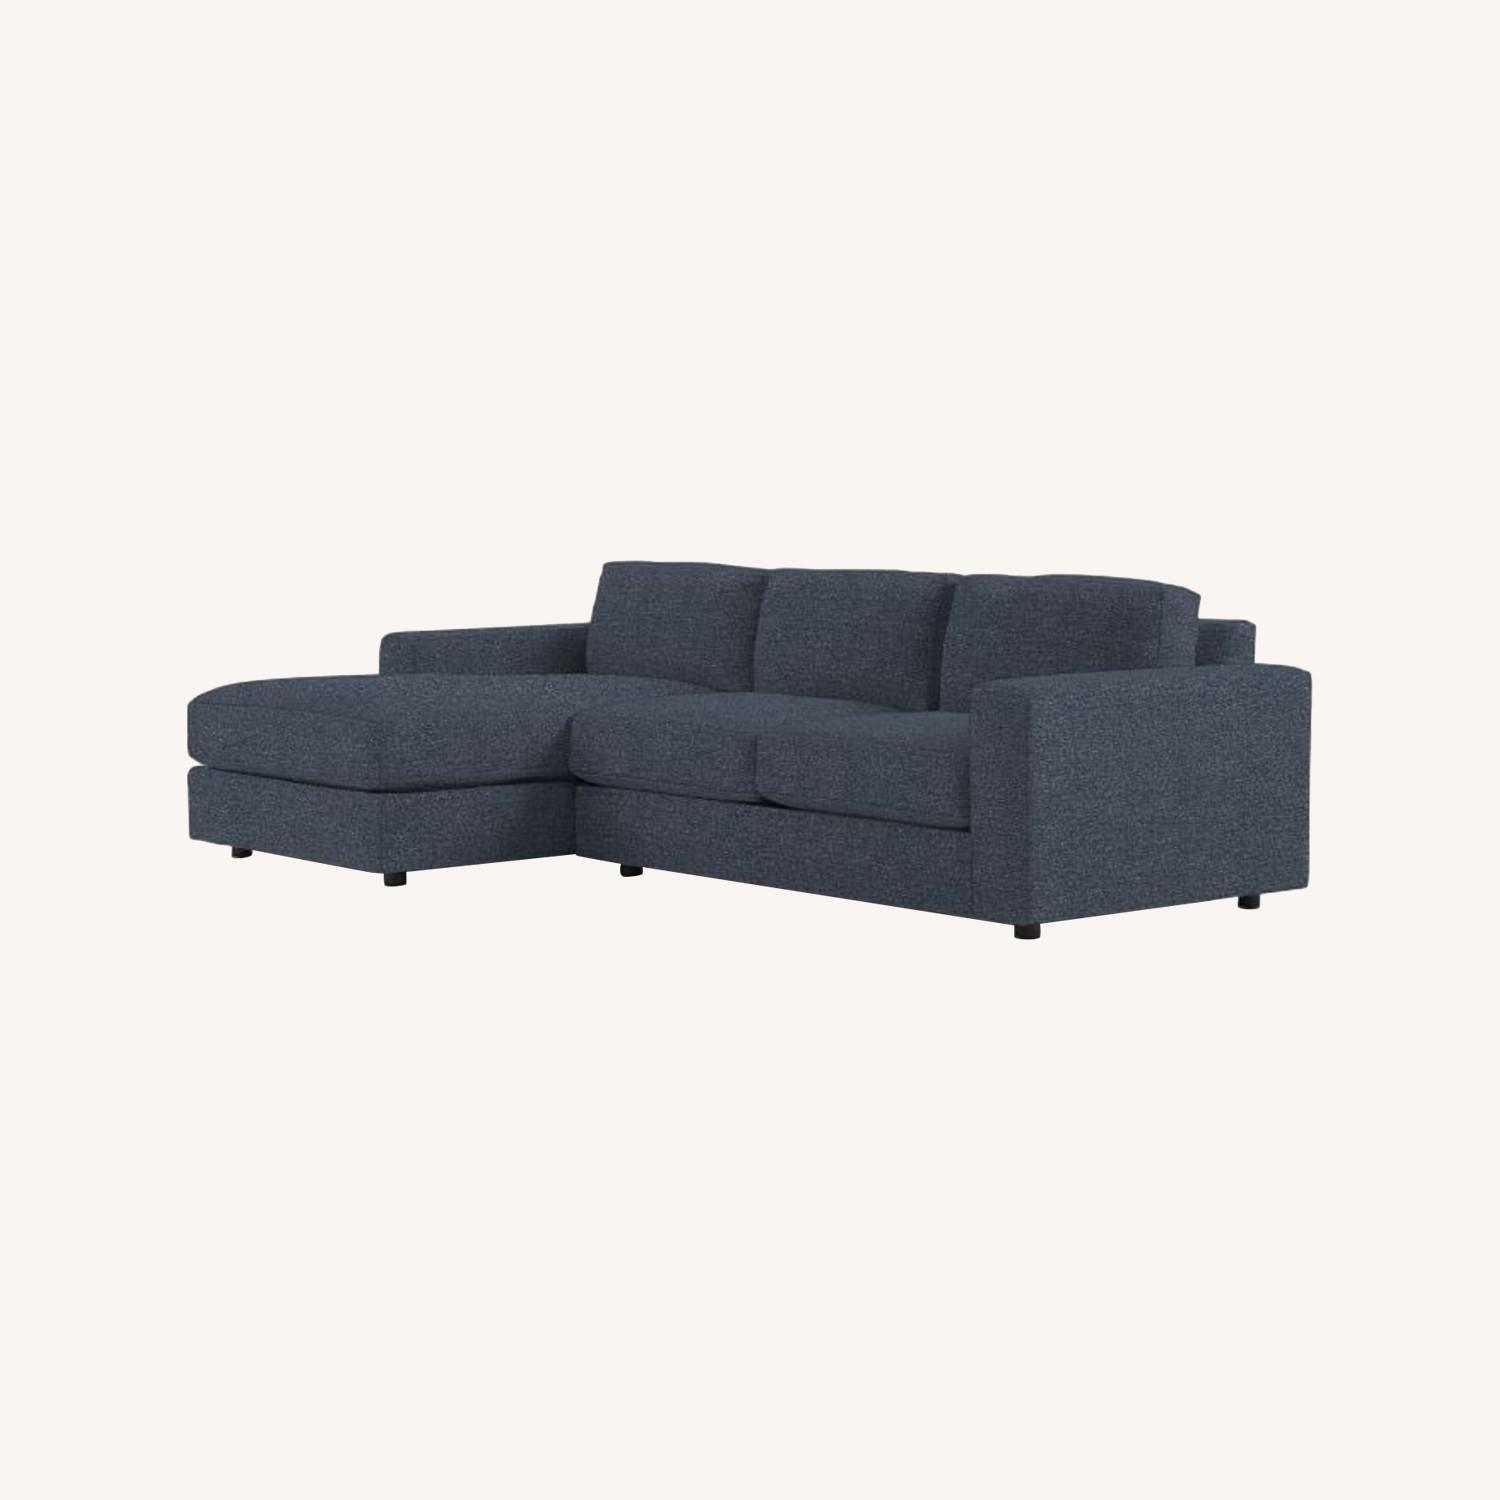 West Elm Urban 2-Piece Chaise Sectional - image-0